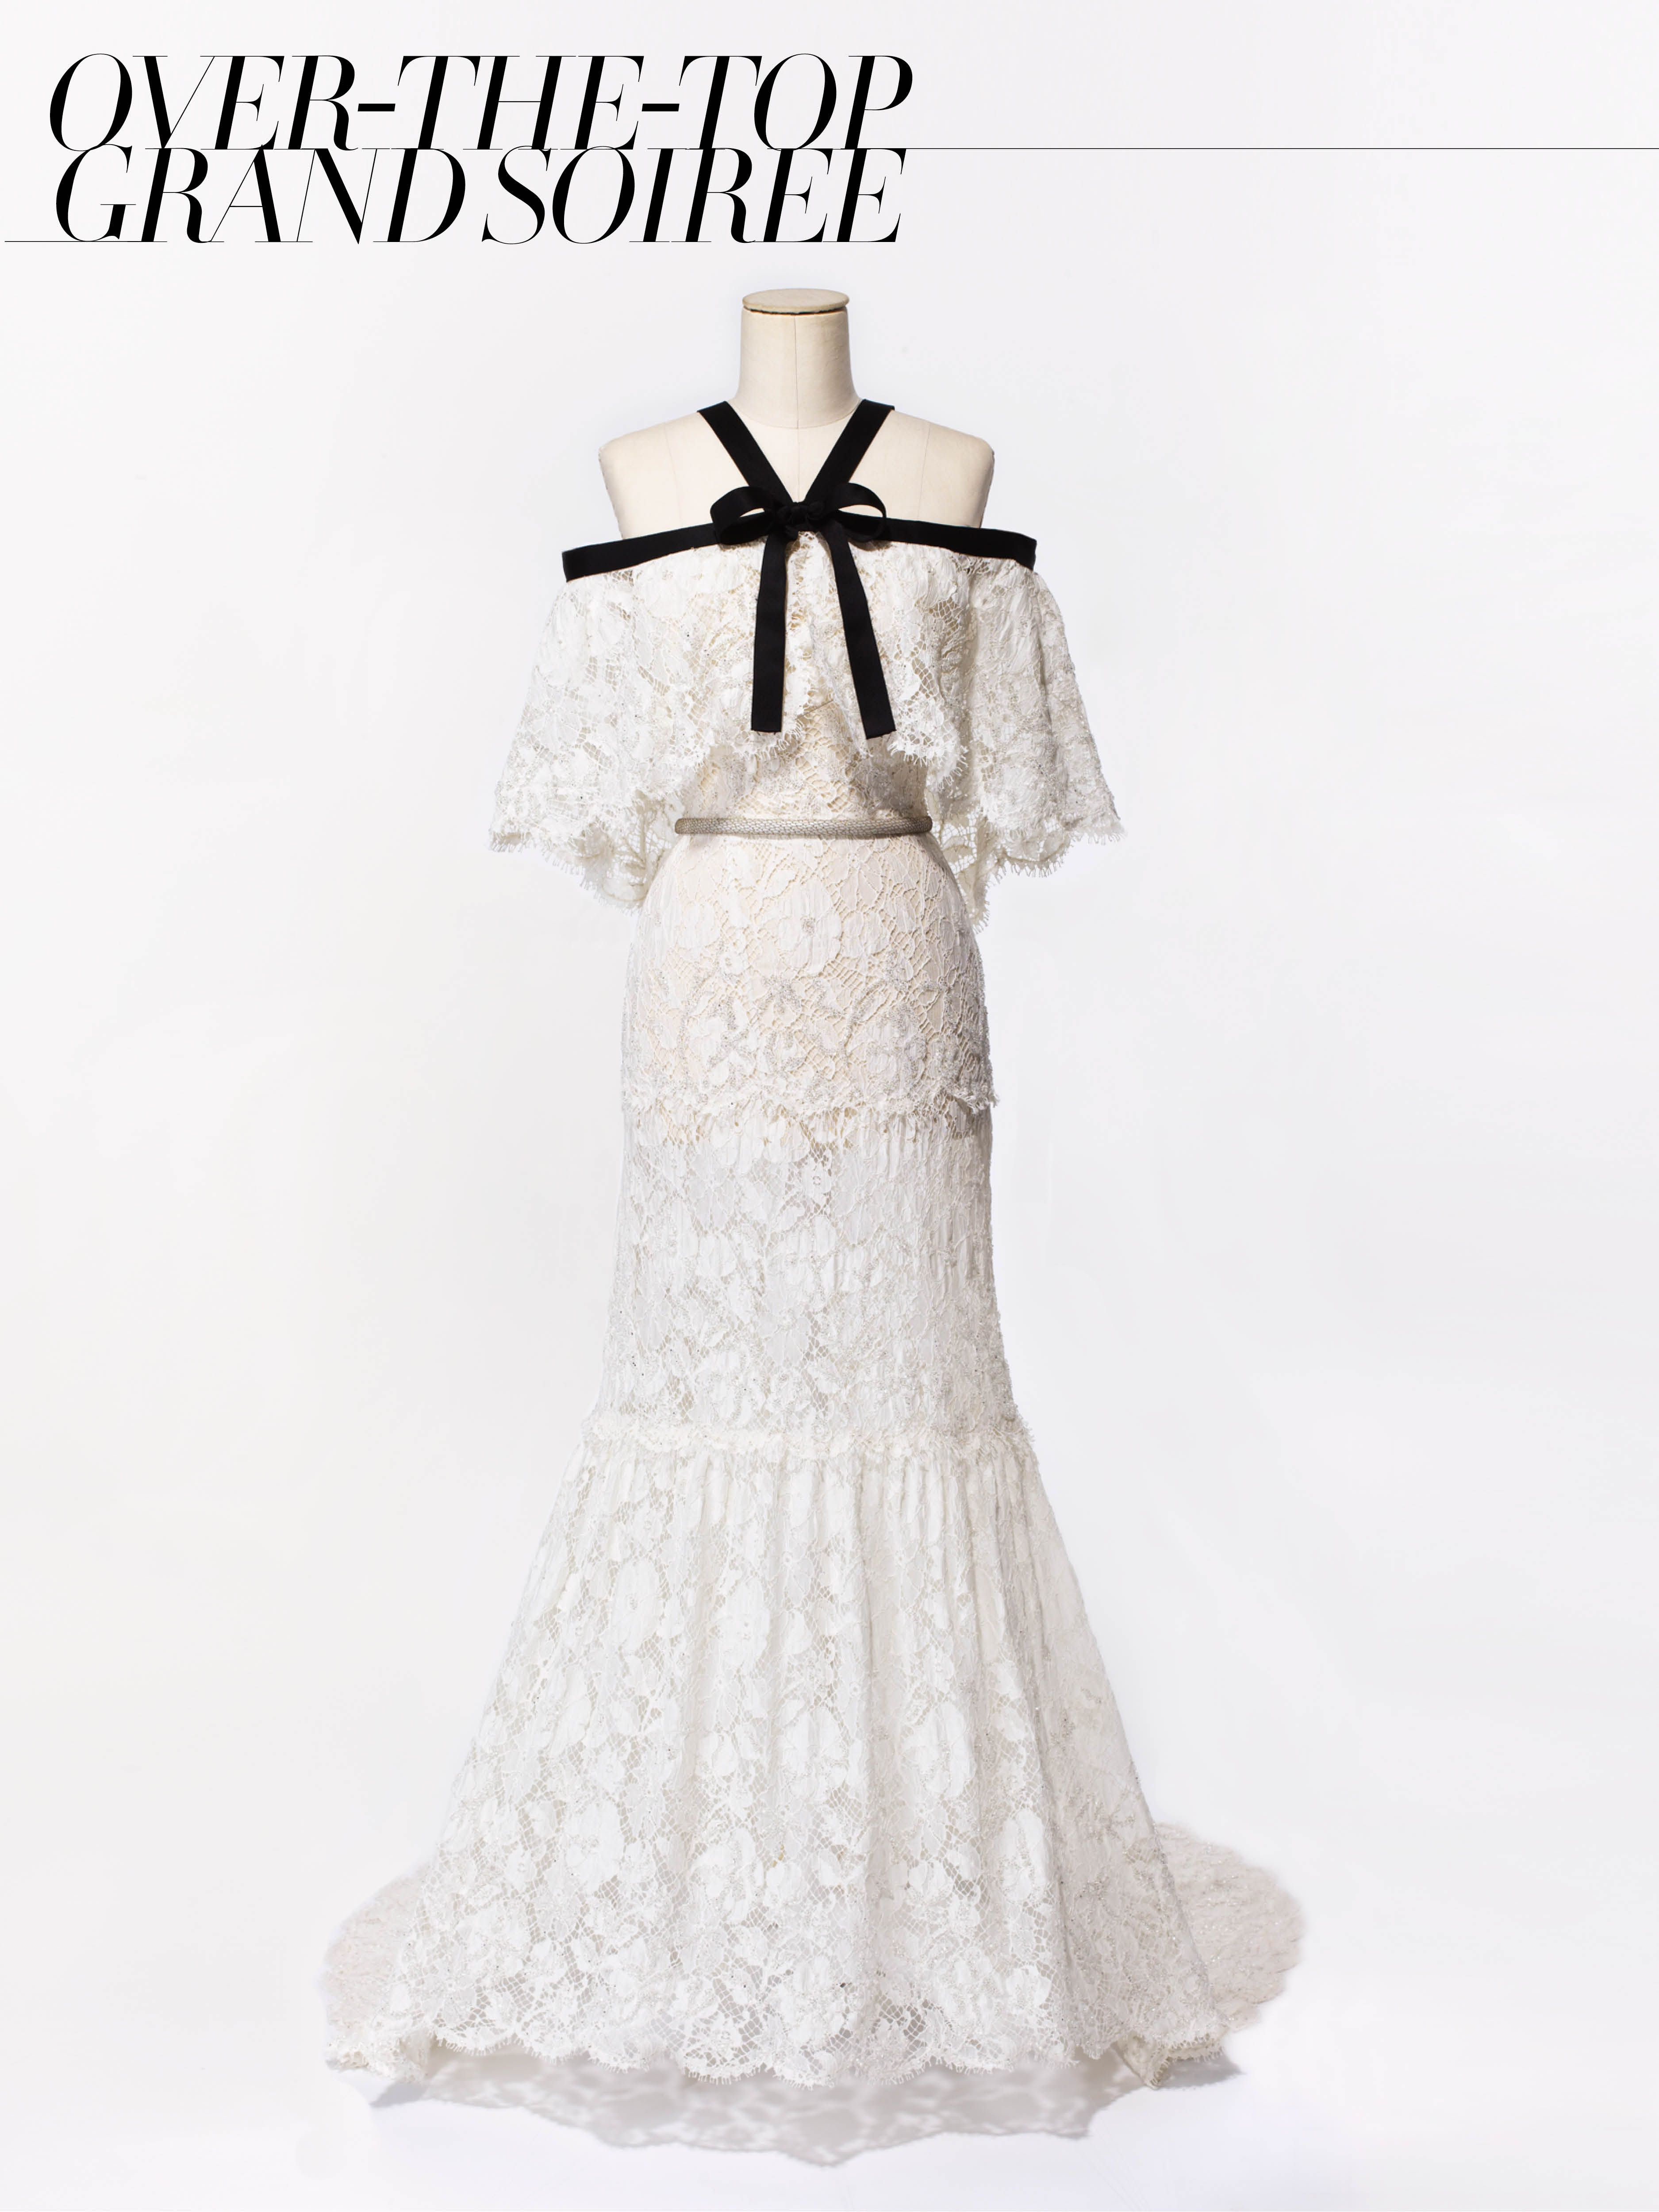 Chanel Haute Couture Ivory Lace Embroidered Dress Price Upon Requestfor Information